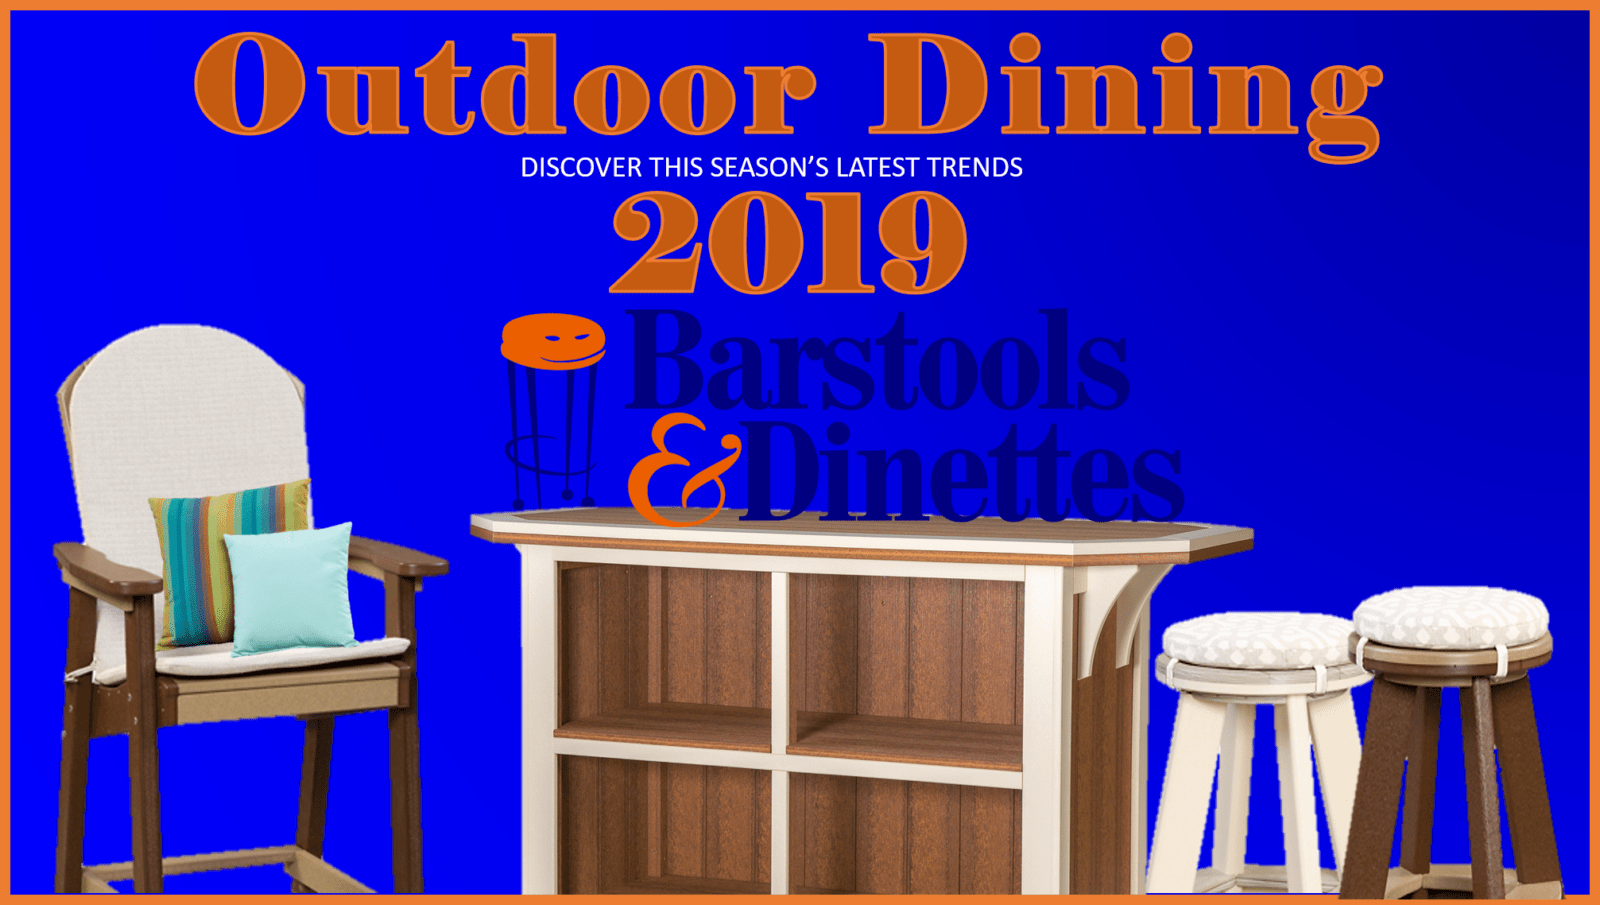 Outdoor Dining Trends 2019 - discover the latest season's trends